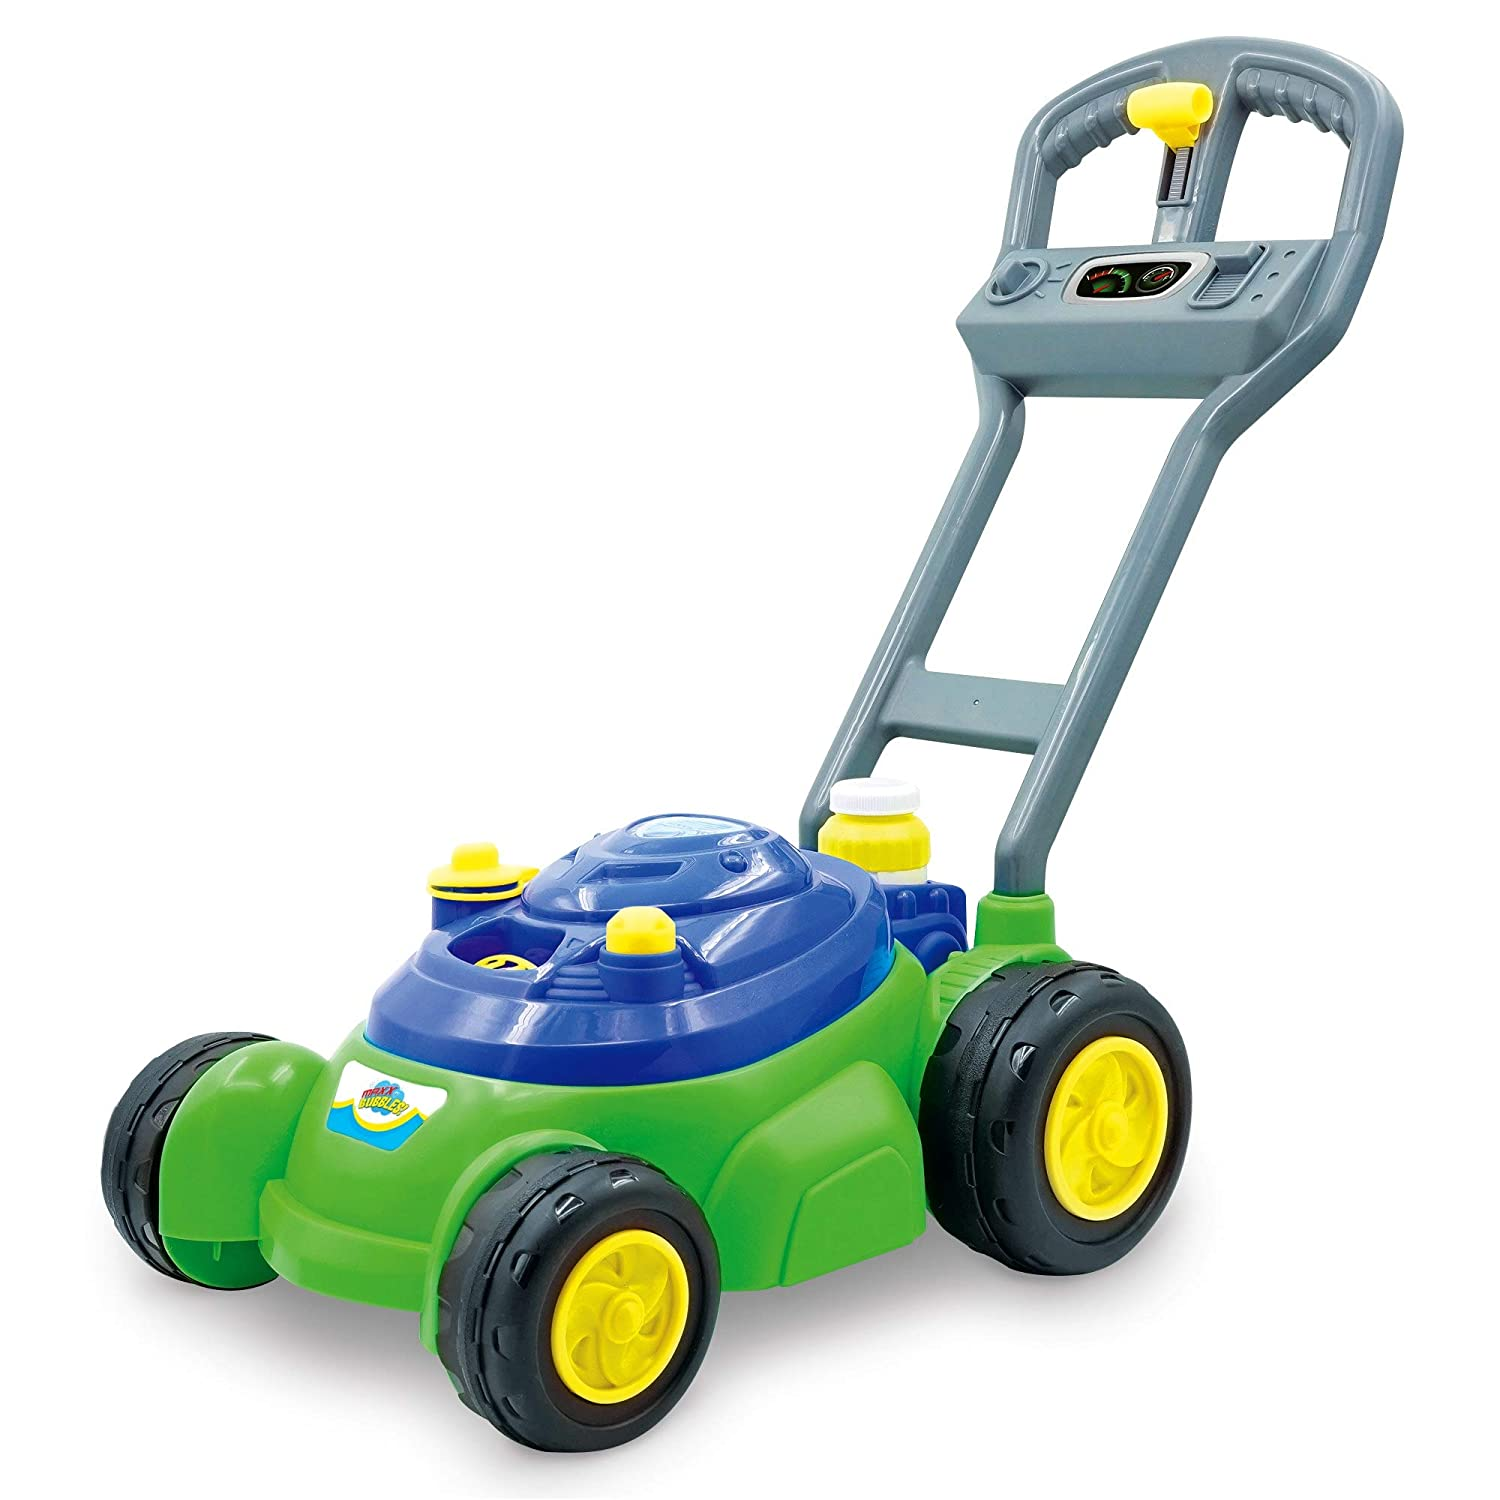 Top 6 Best Bubble Lawn Mower for Kids & Toddlers (2019 Reviews) 2